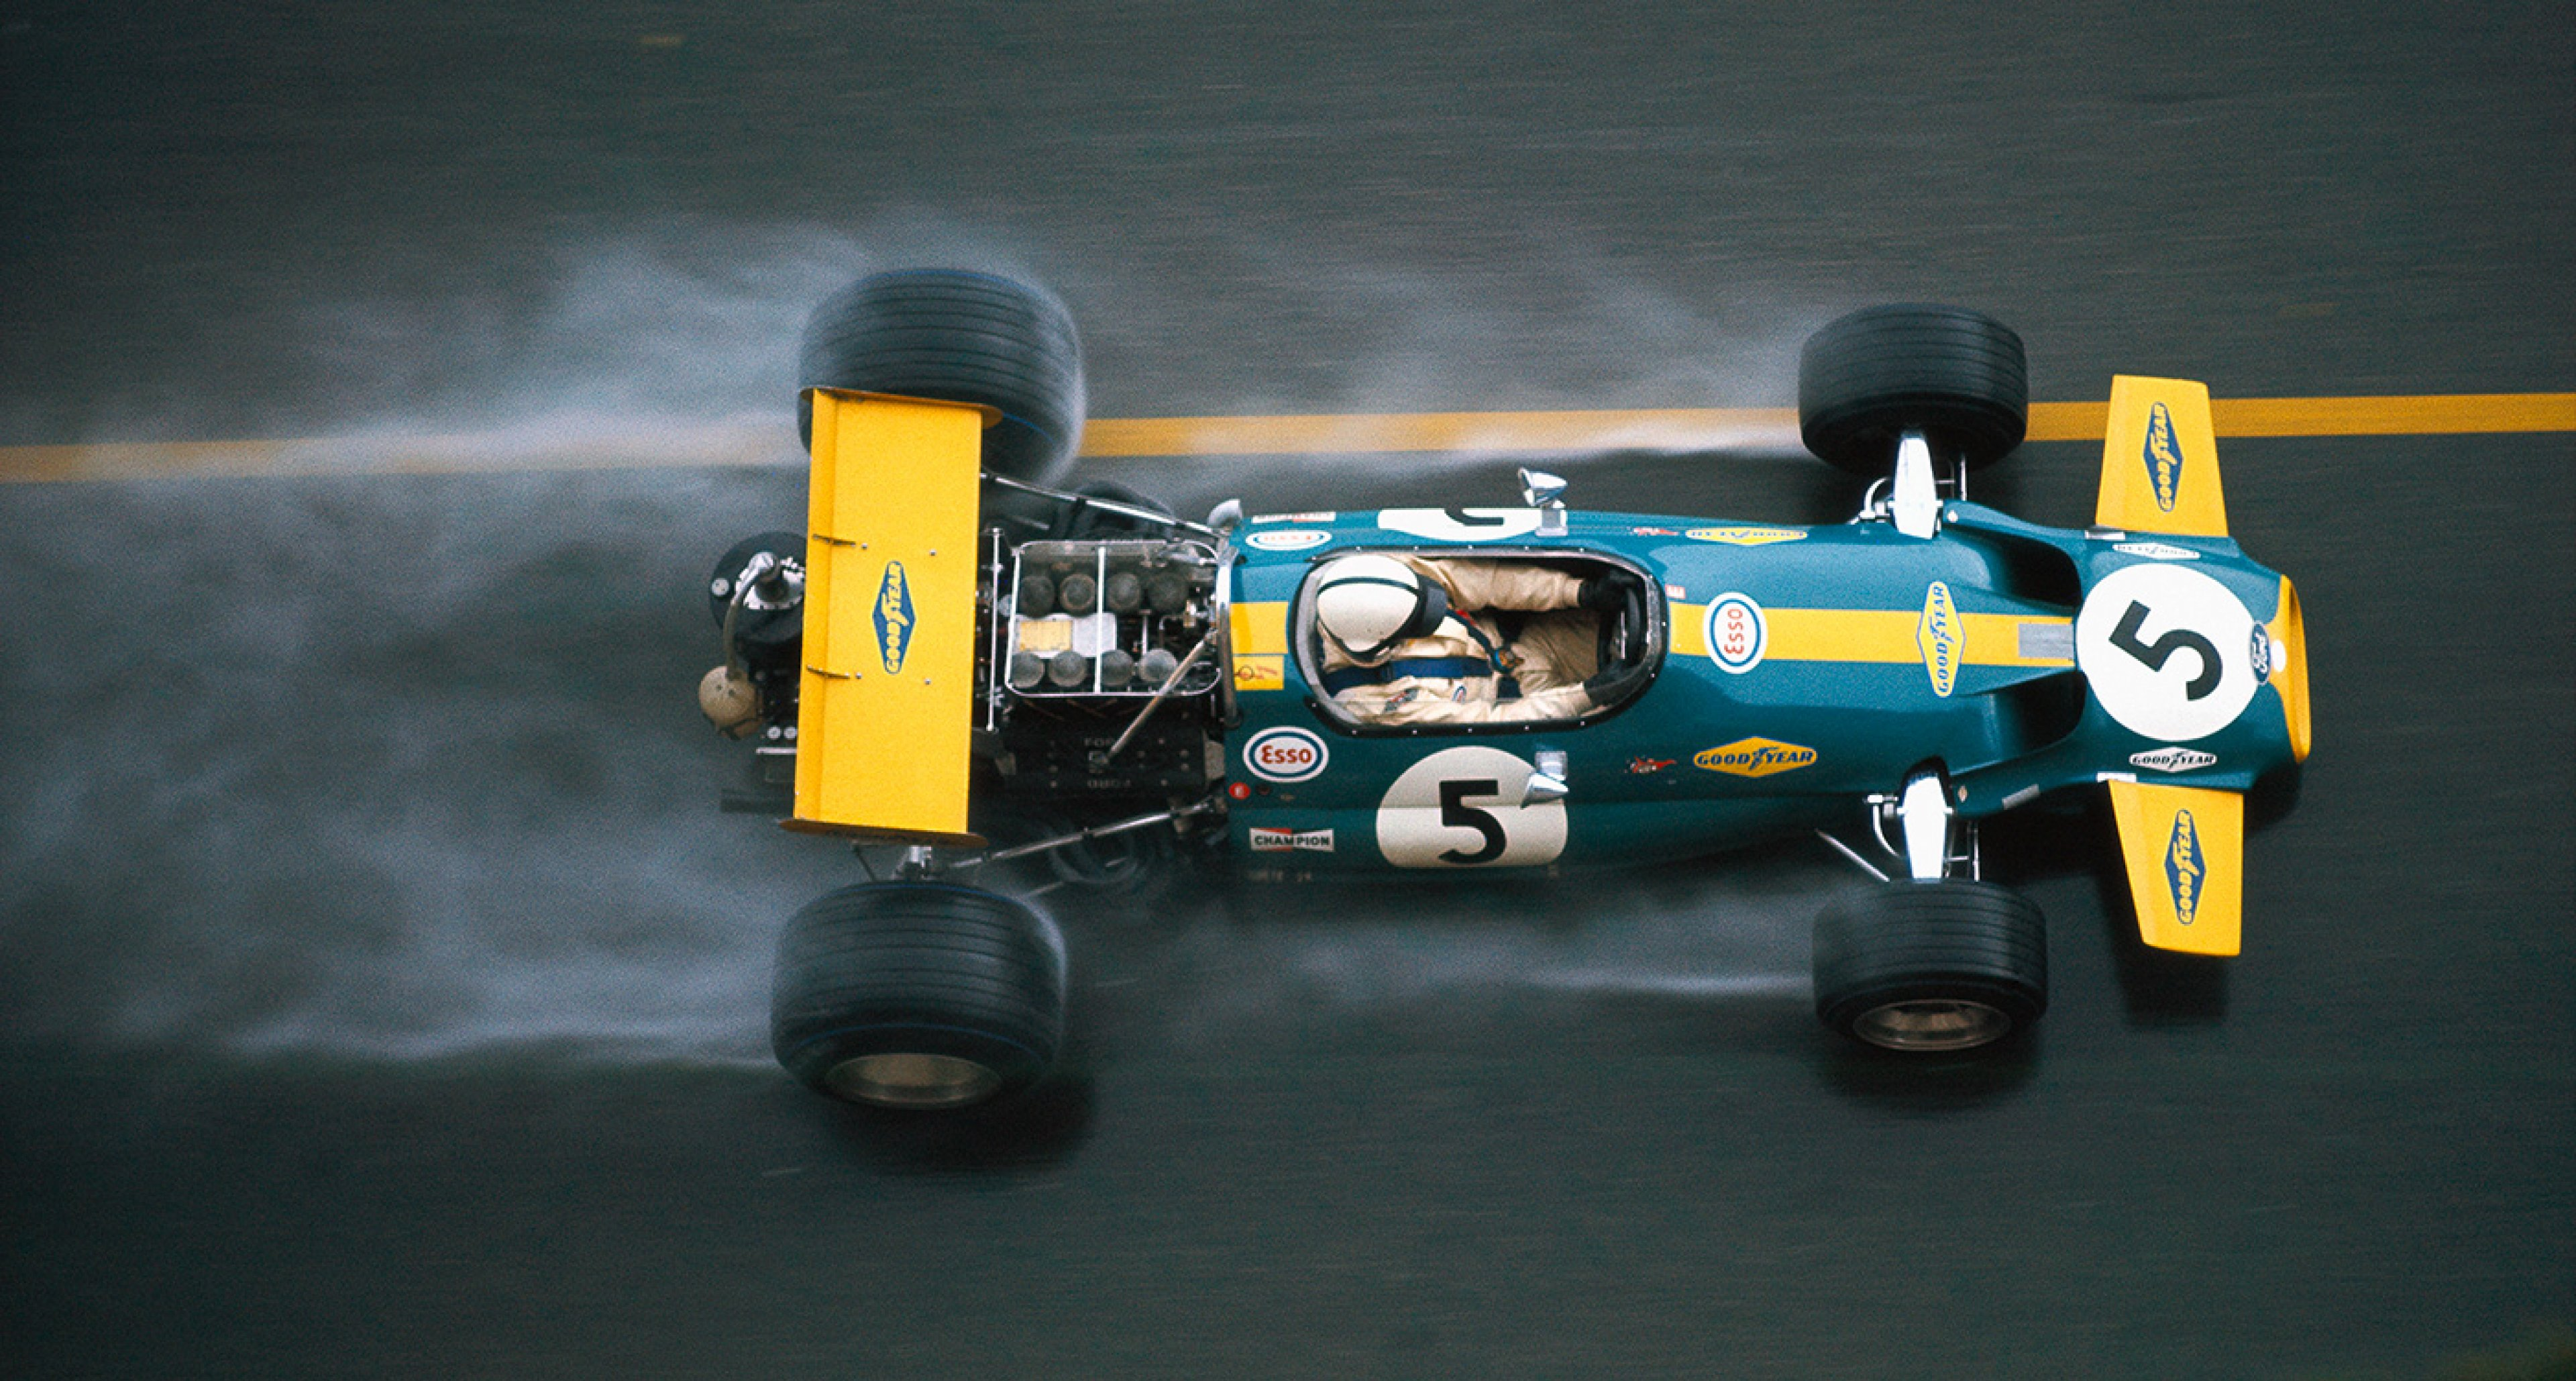 Brabham before being overtaken by Rindt at the slippery Monaco GP of 1970